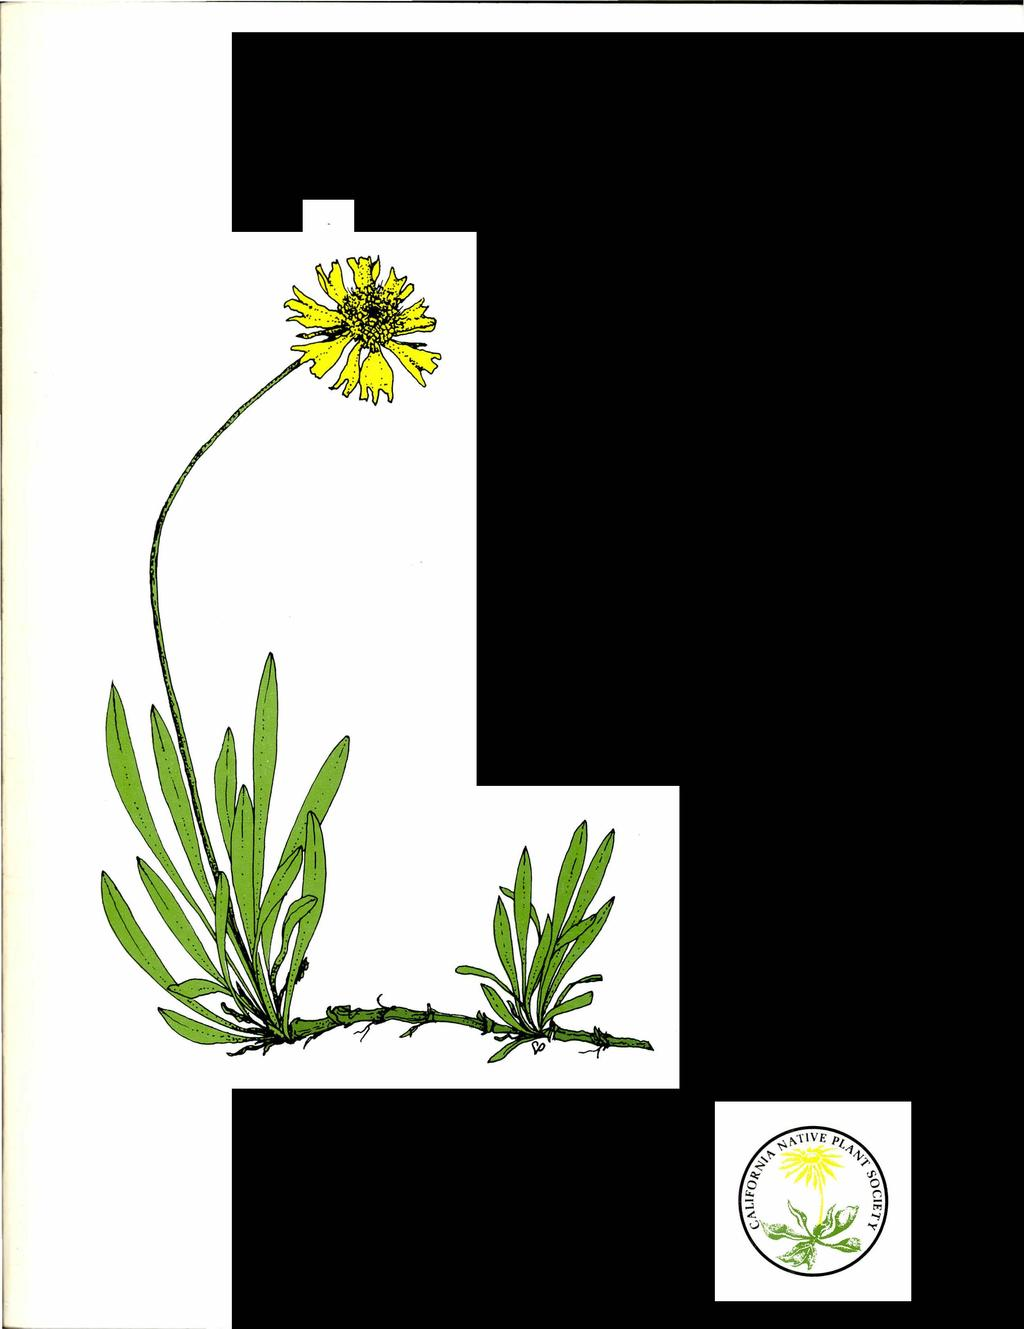 INVENTORY of RARE AND ENDANGERED VASCULAR PLANTS of CALIFORNIA, Special